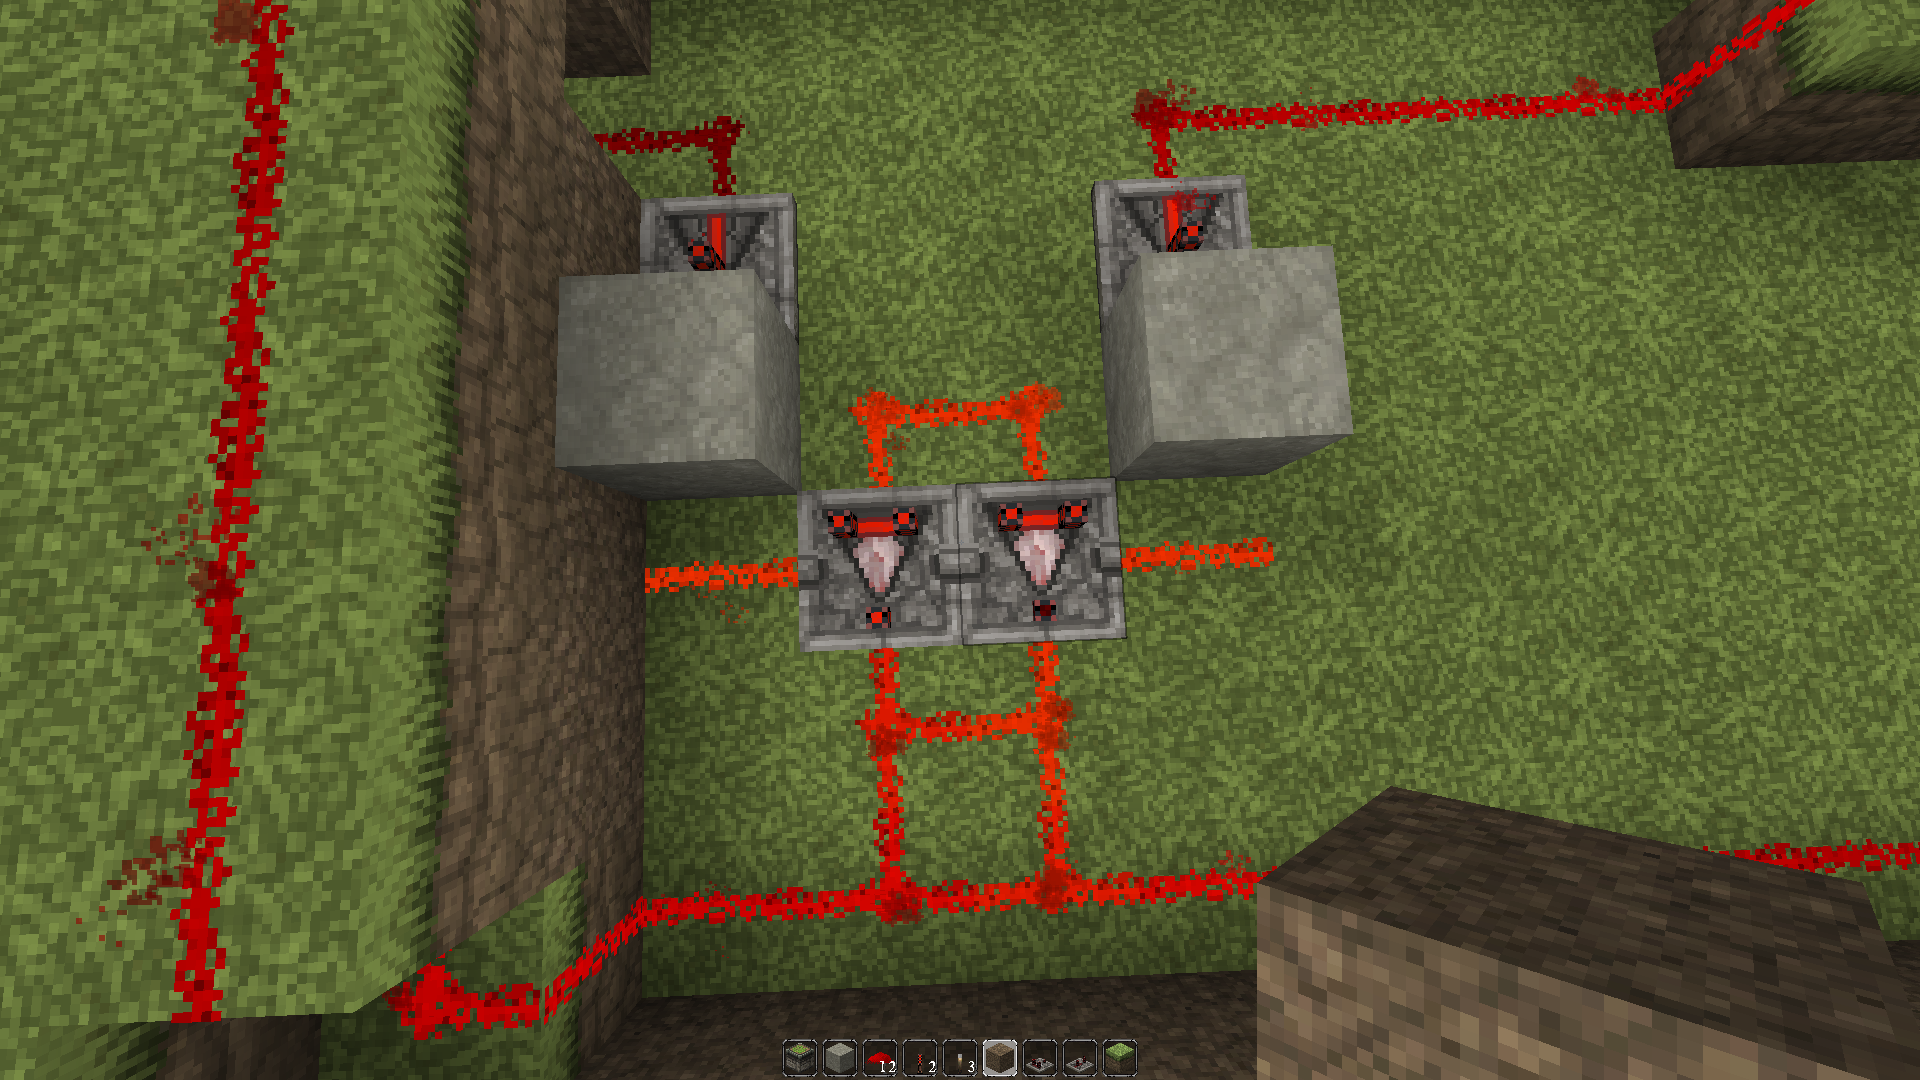 how to make a 2x3 piston door